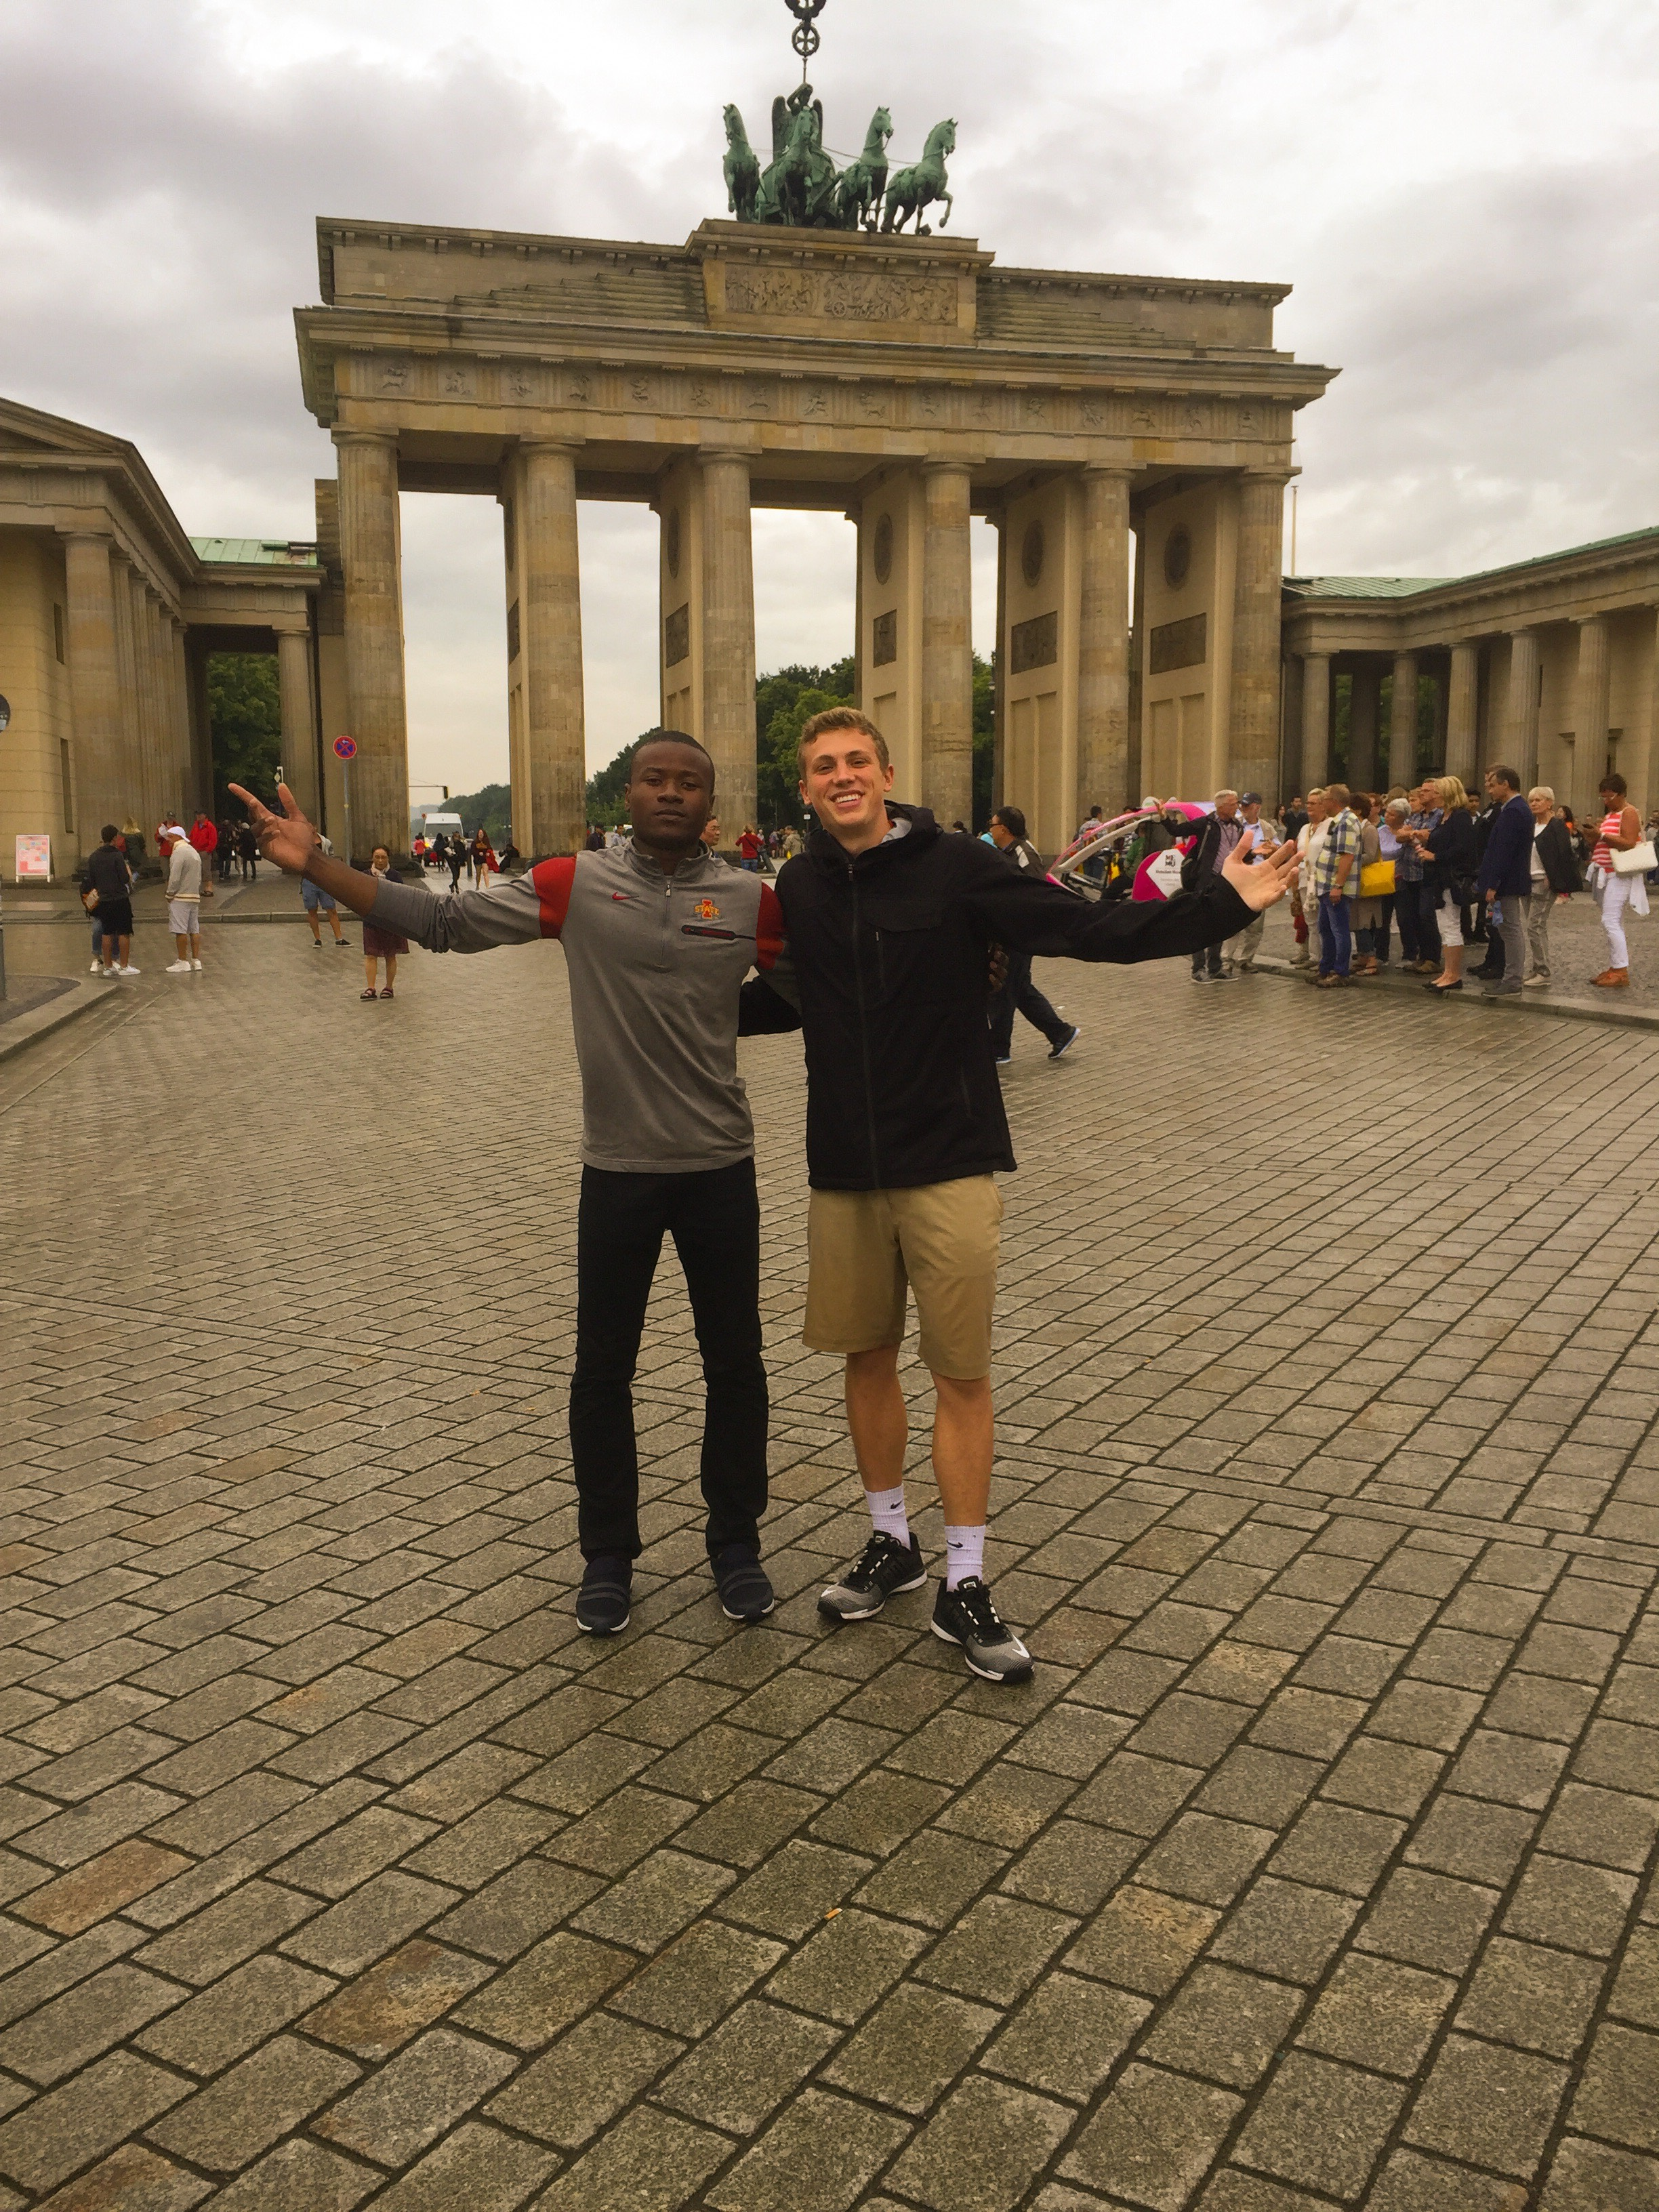 Benito Kayenge in front of the Brandenburg Gate with a friend during the LAS Global Seminar in Berlin in July 2017.